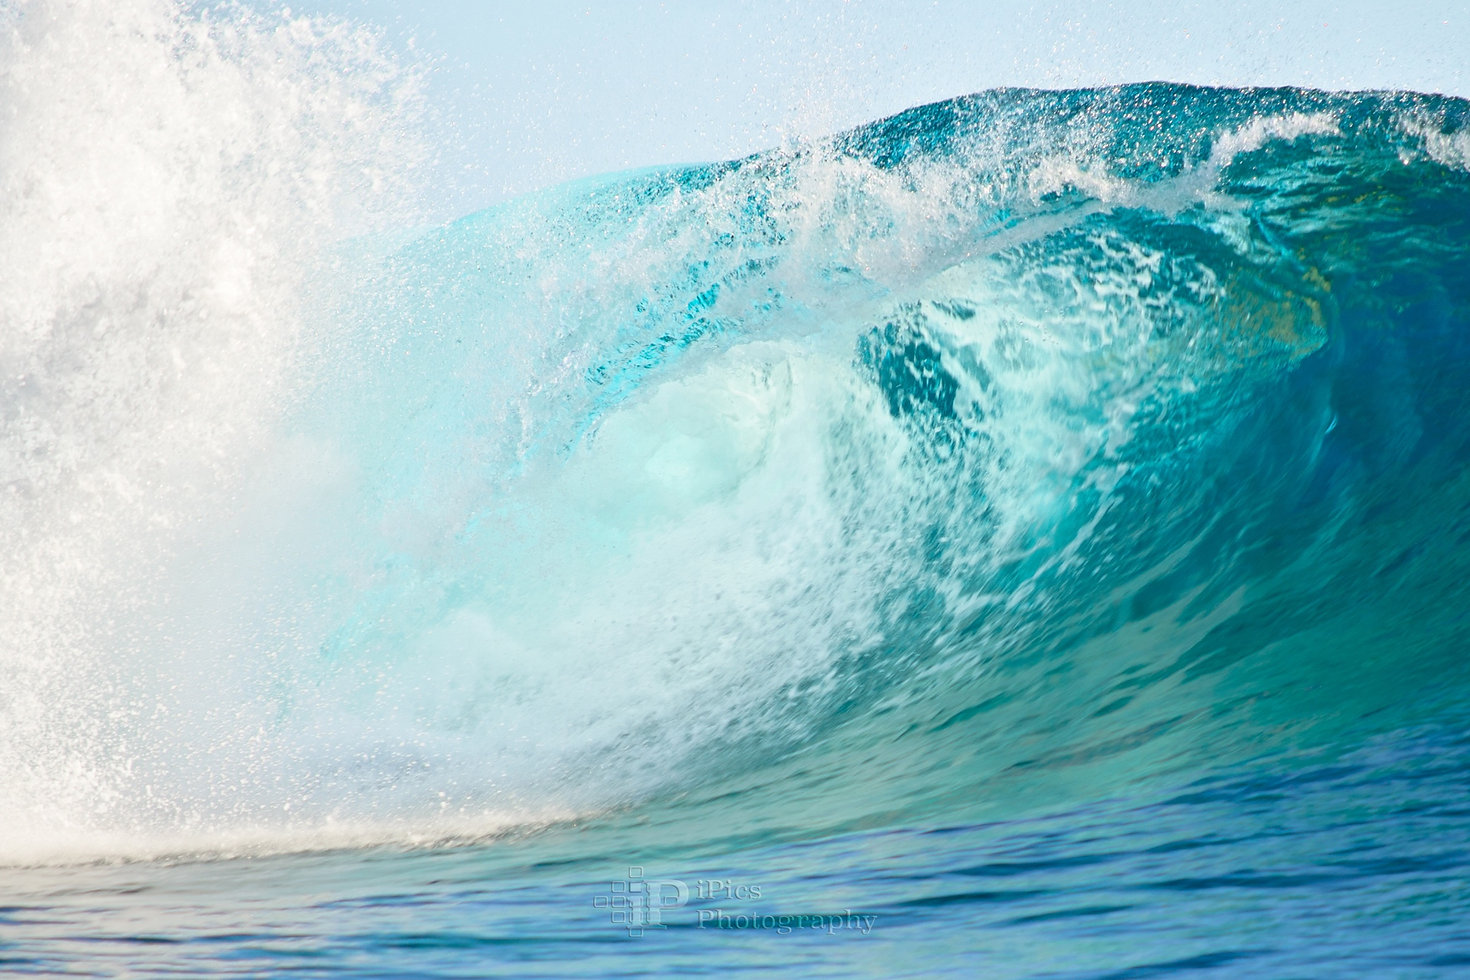 Pacific big surfing wave breaking